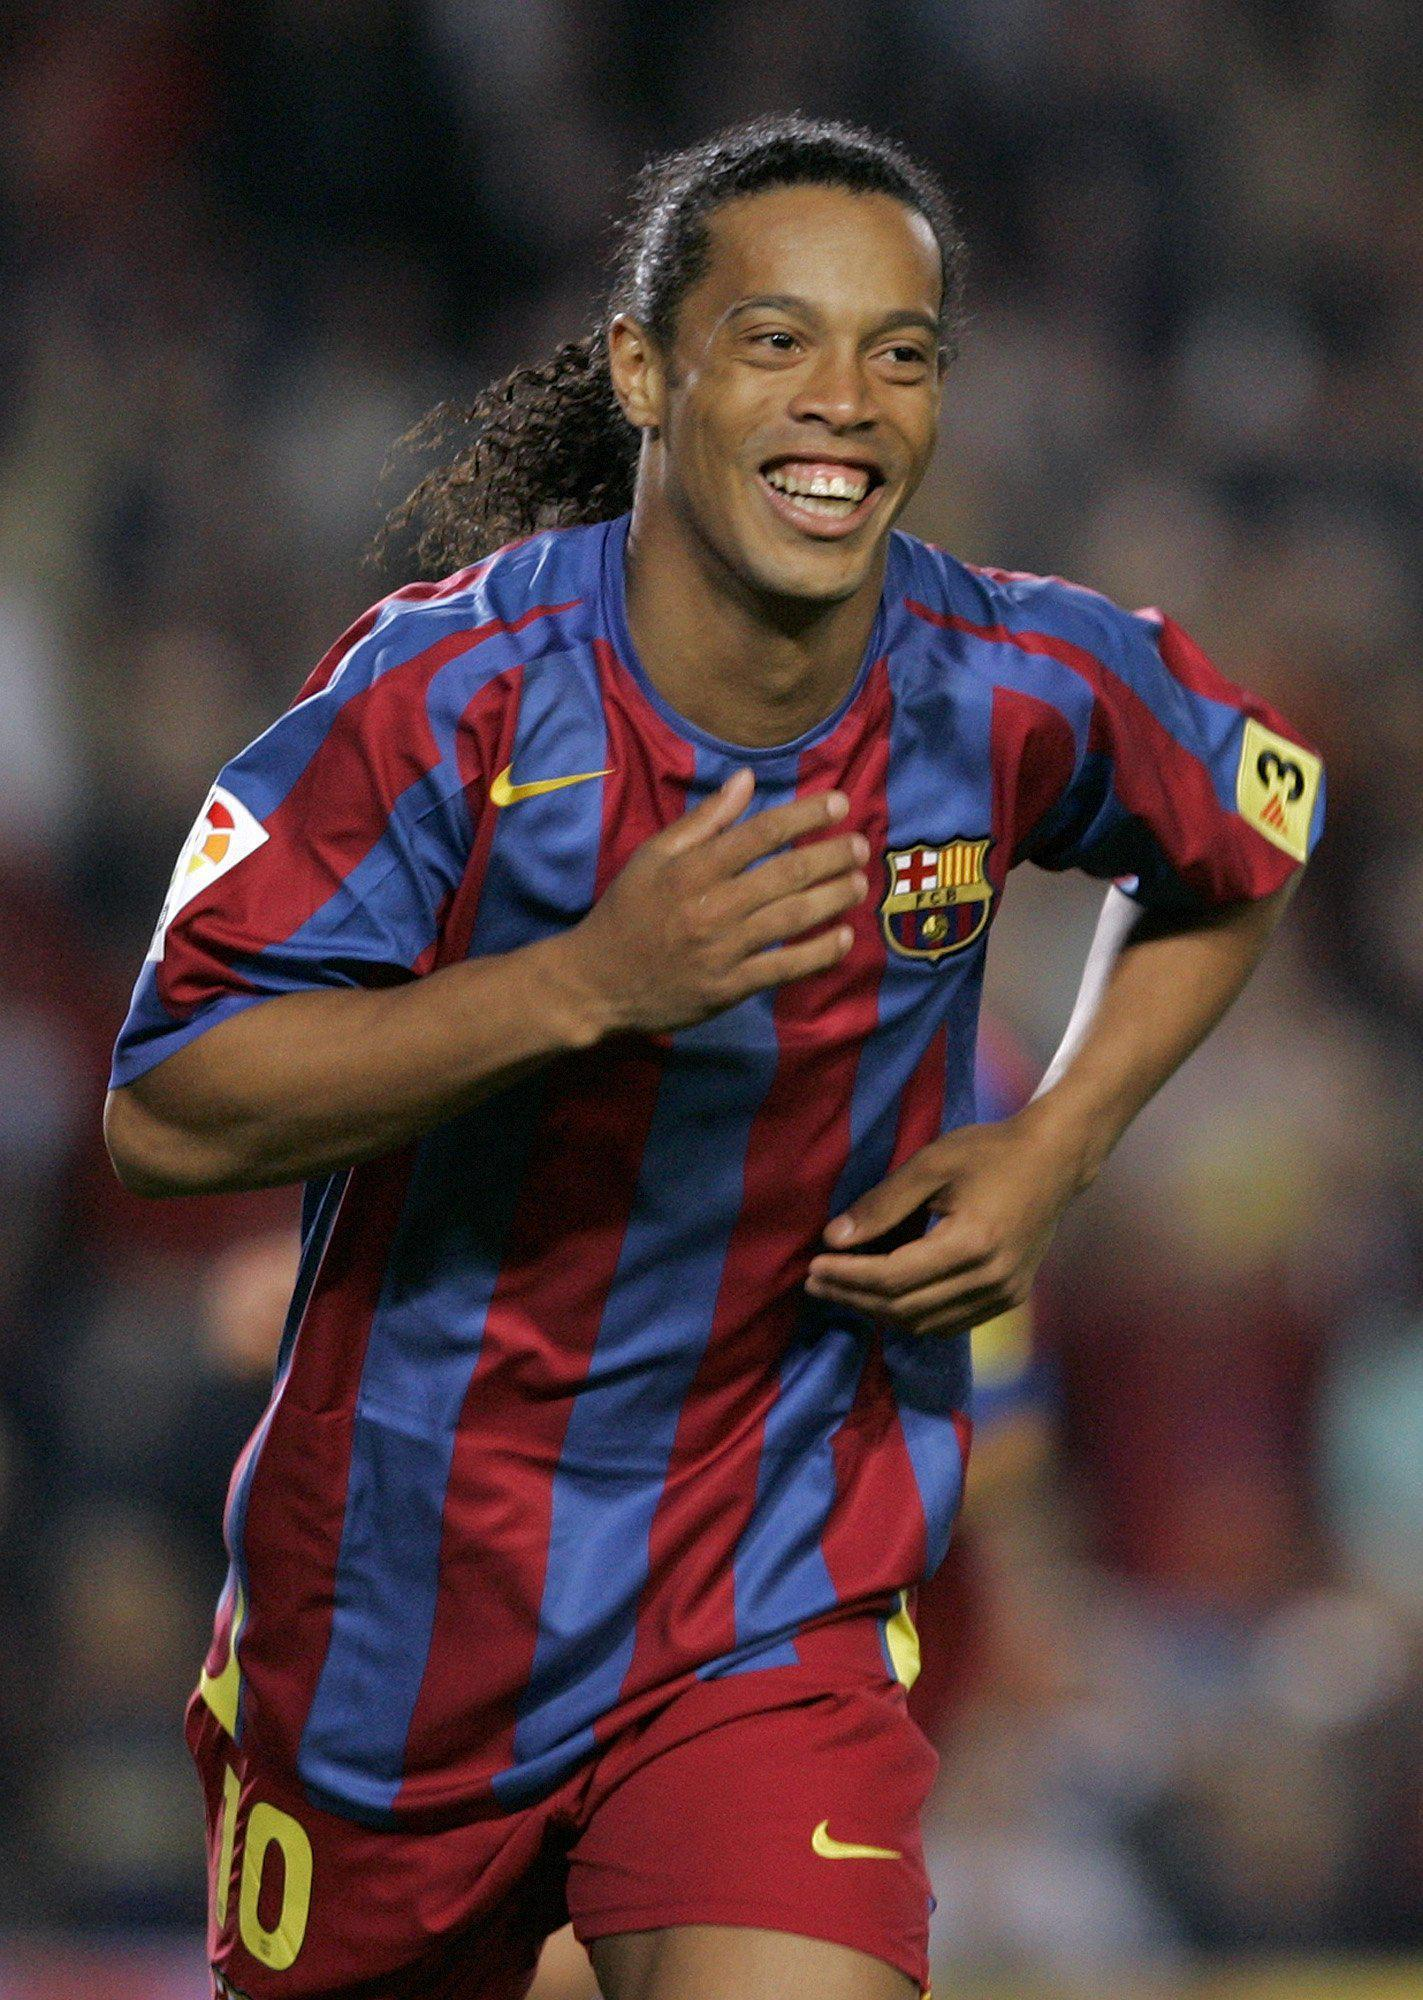 Ronaldinholast appeared in FIFA 10 and will be welcome back by the gaming community